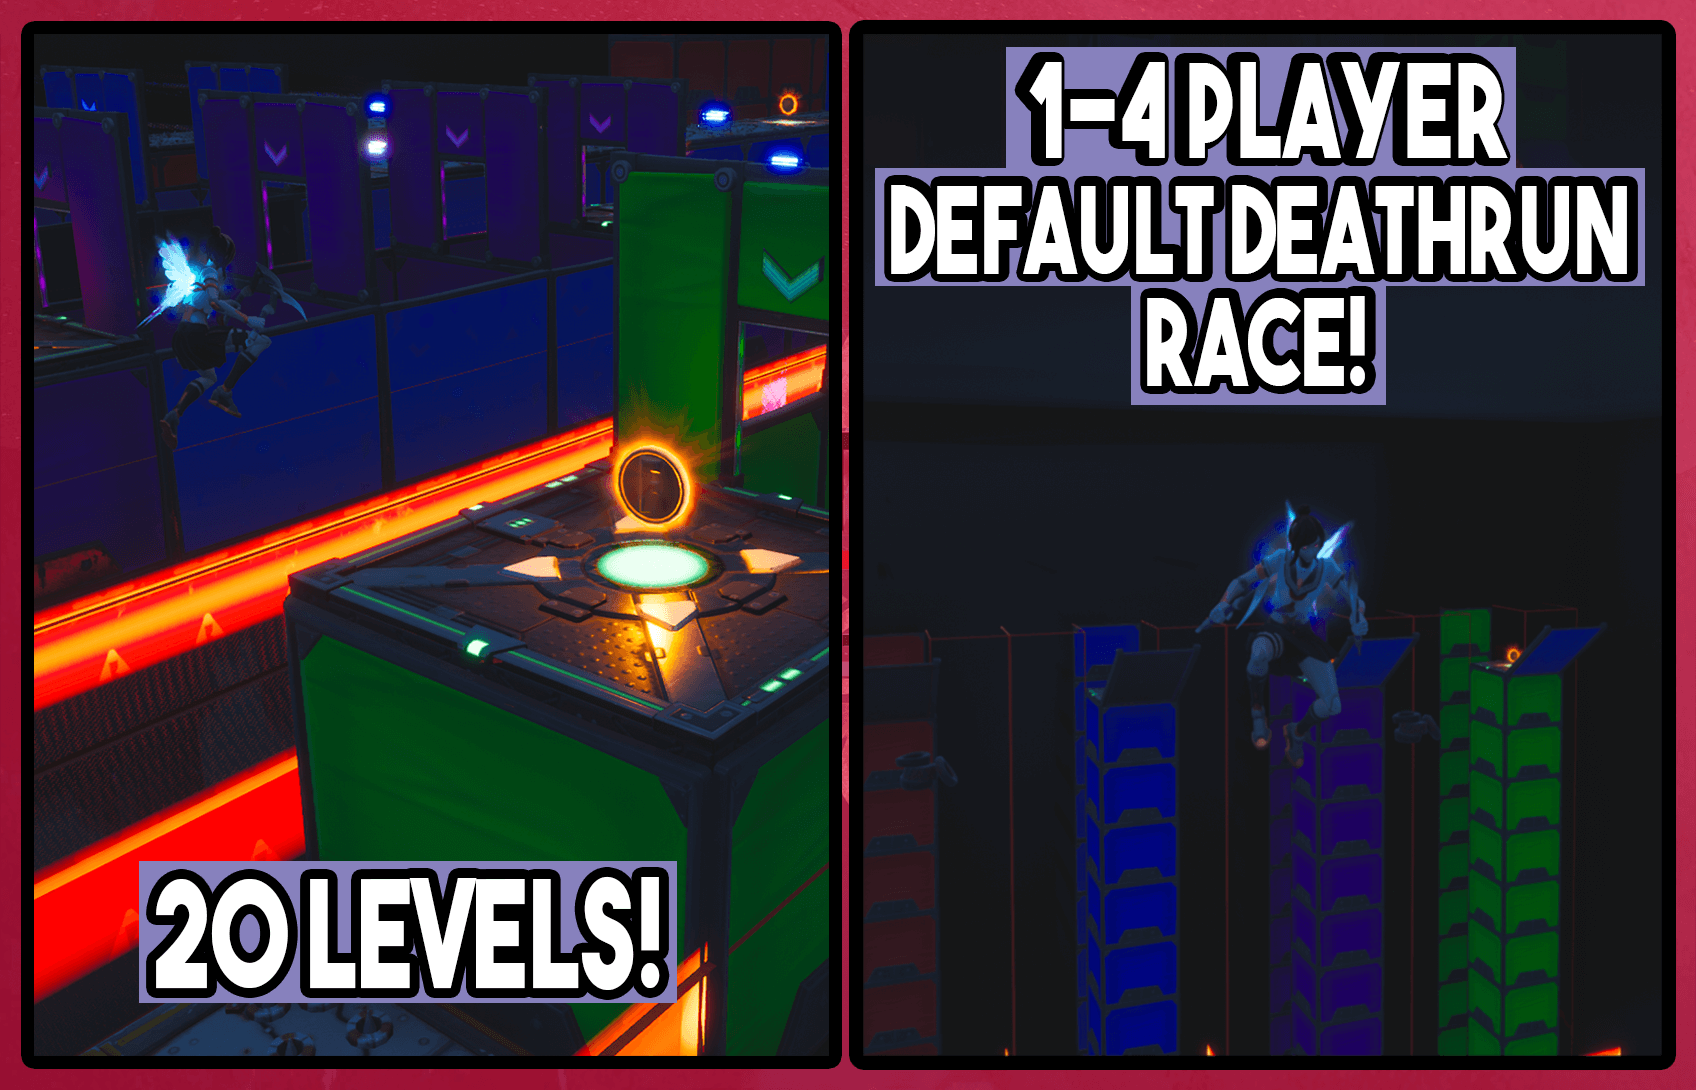 1-4 PLAYER DEFAULT DEATHRUN RACE!